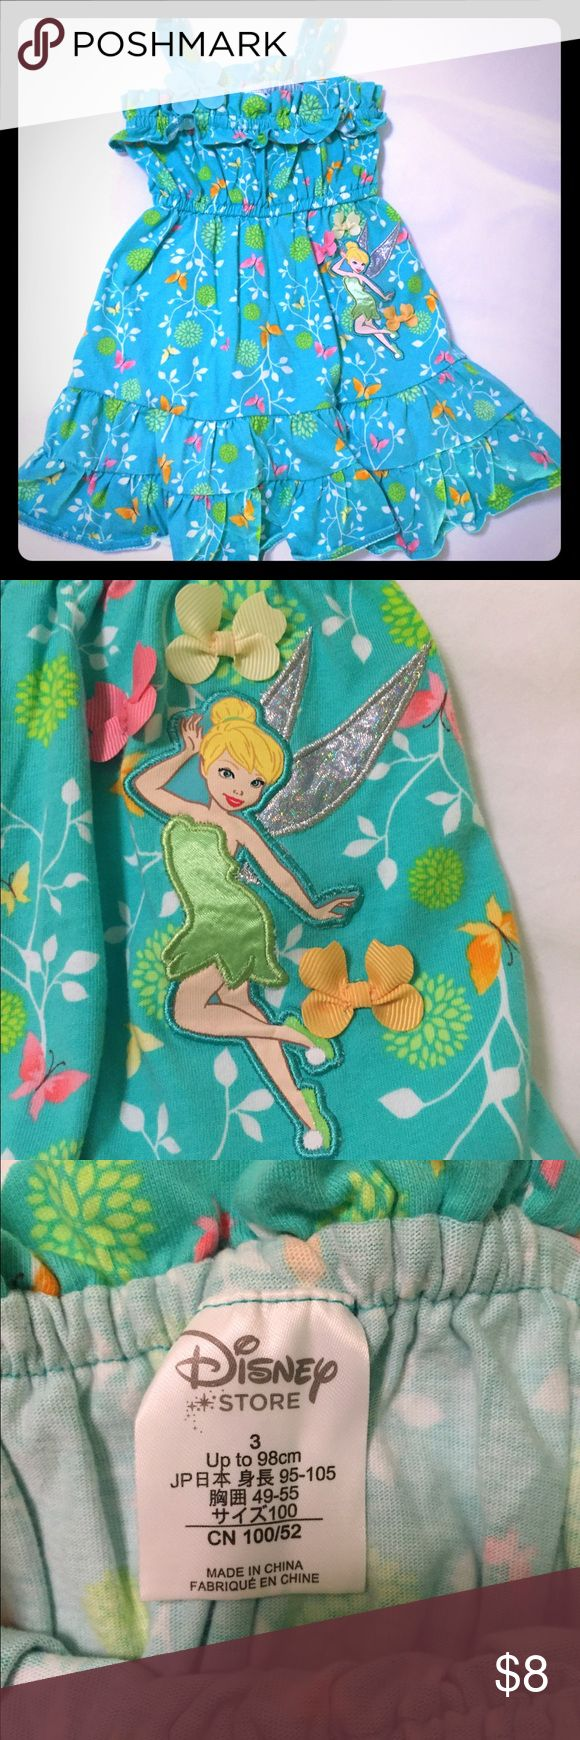 Disney Store size 3 Tinkerbell dress Disney Store 3t summer Tinkerbell dress. Color is more green (see second and third pictures) then Aqua. Disney Dresses Casual